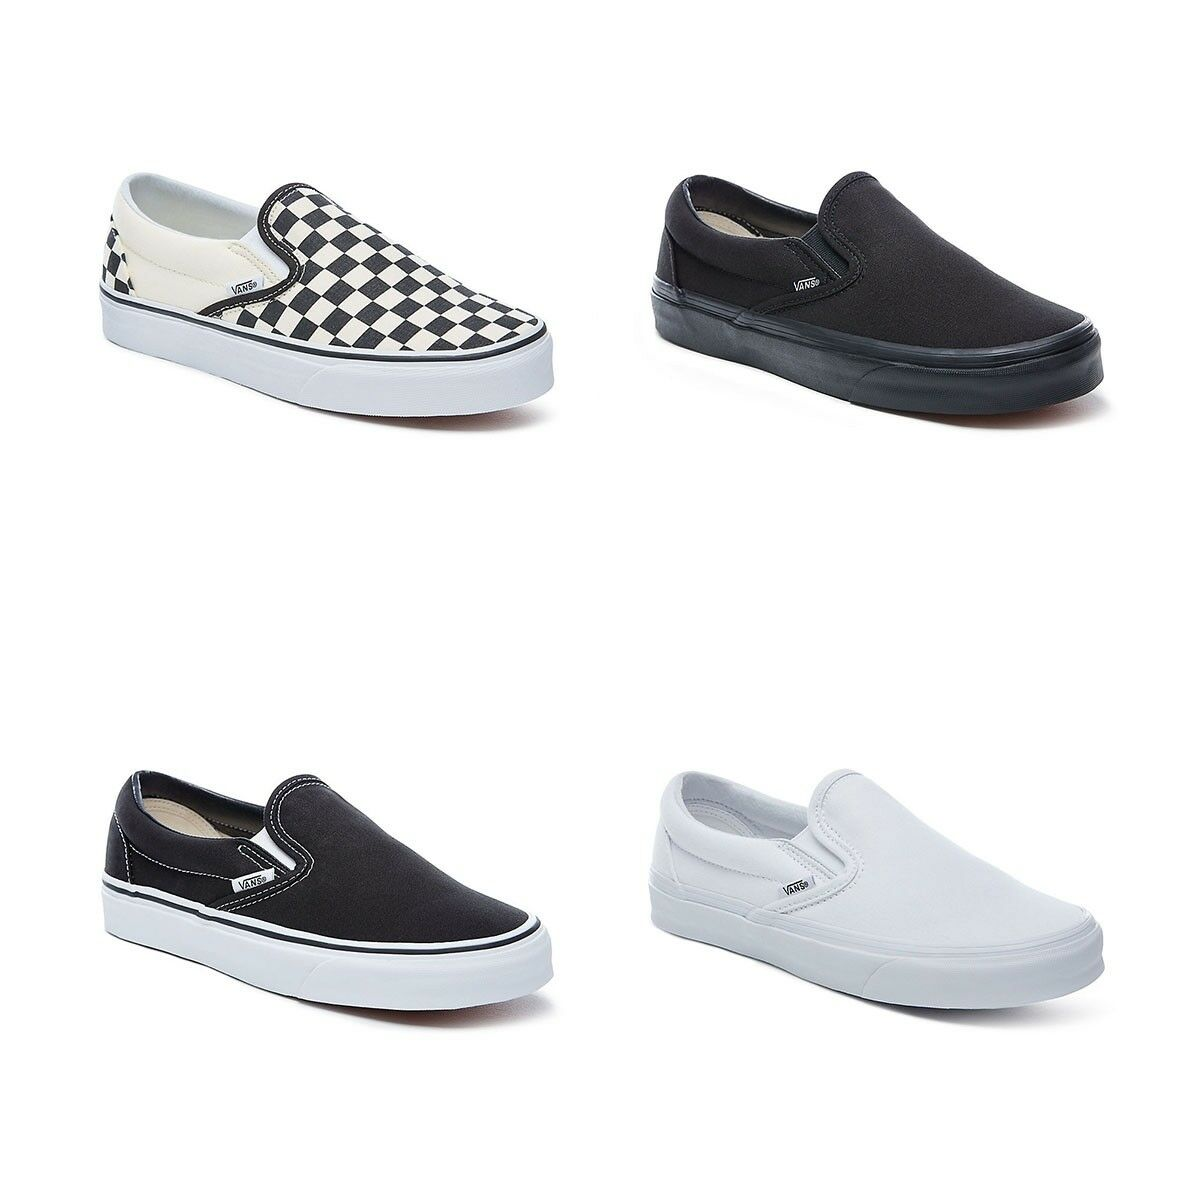 New Vans Slip On Shoes Classic Black White Canvas Sneakers All Sizes נעלי ואנס